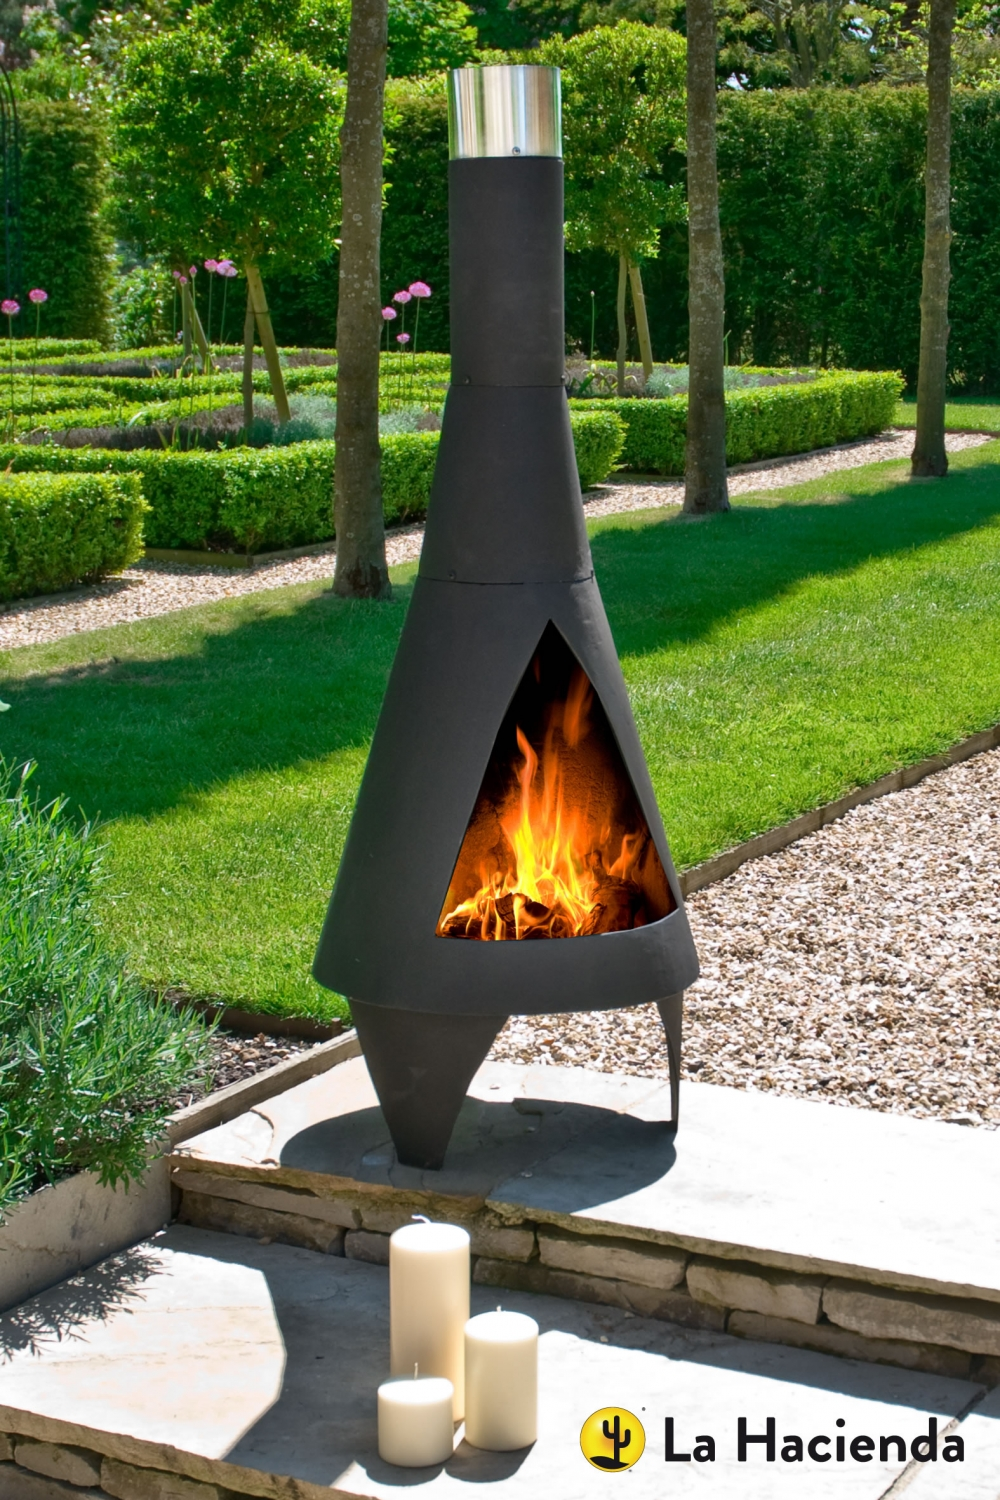 La Hacienda Colorado Medium Steel Chiminea Patio Life